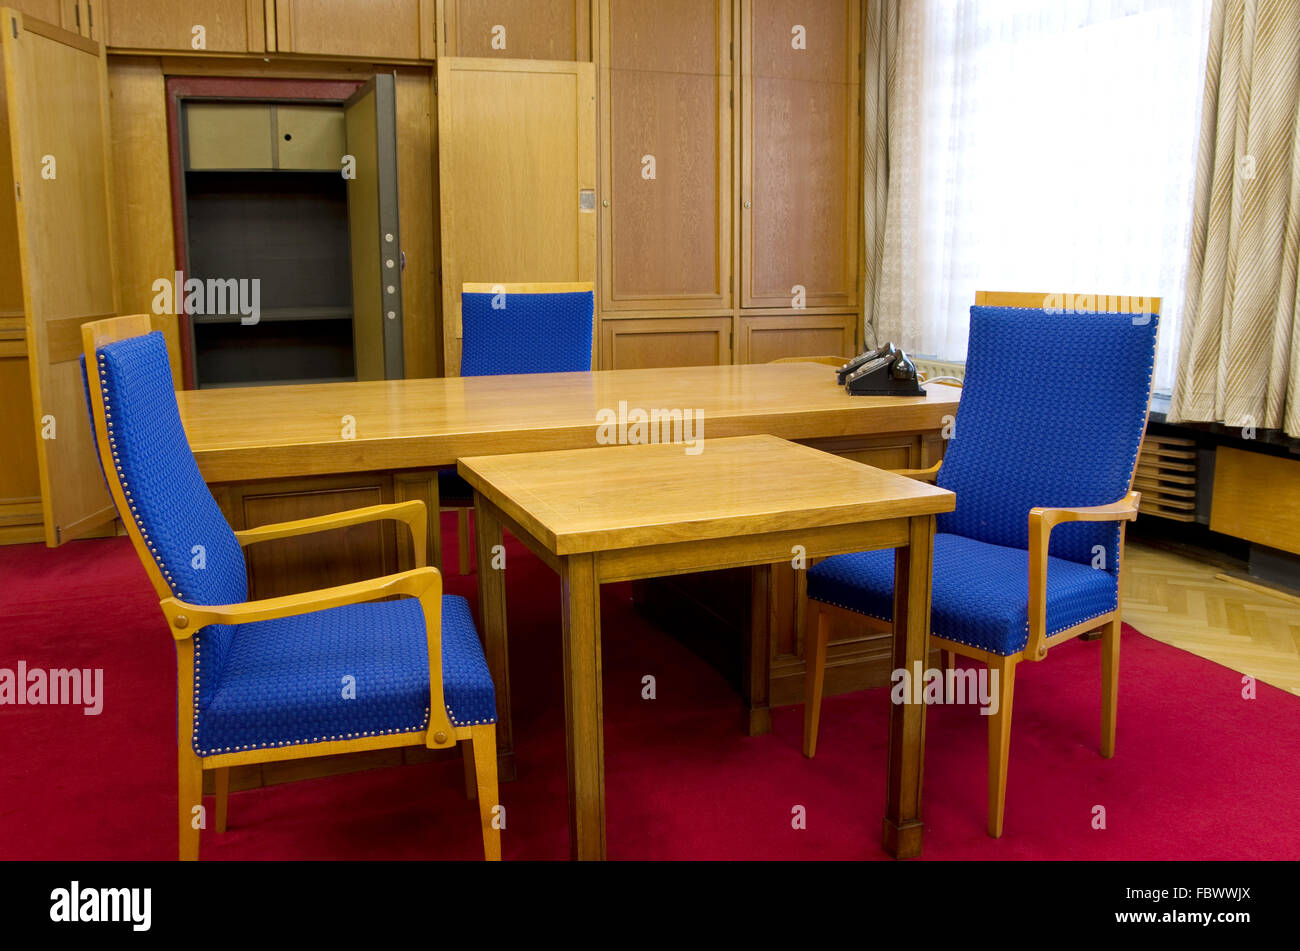 office of erich mielke stasi germany - Stock Image